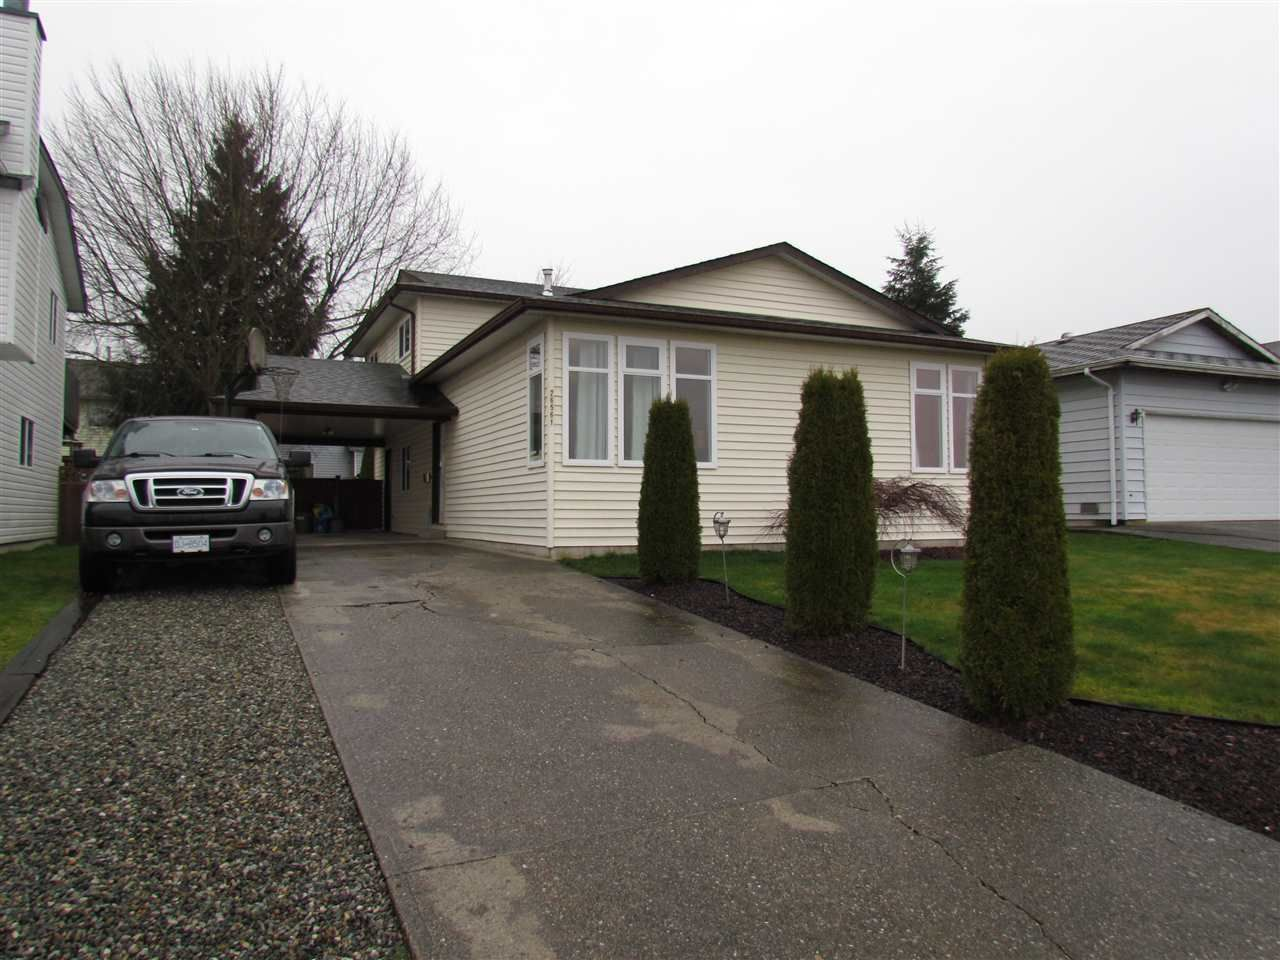 Main Photo: 26561 28TH Avenue in Langley: Aldergrove Langley House for sale : MLS®# R2097454